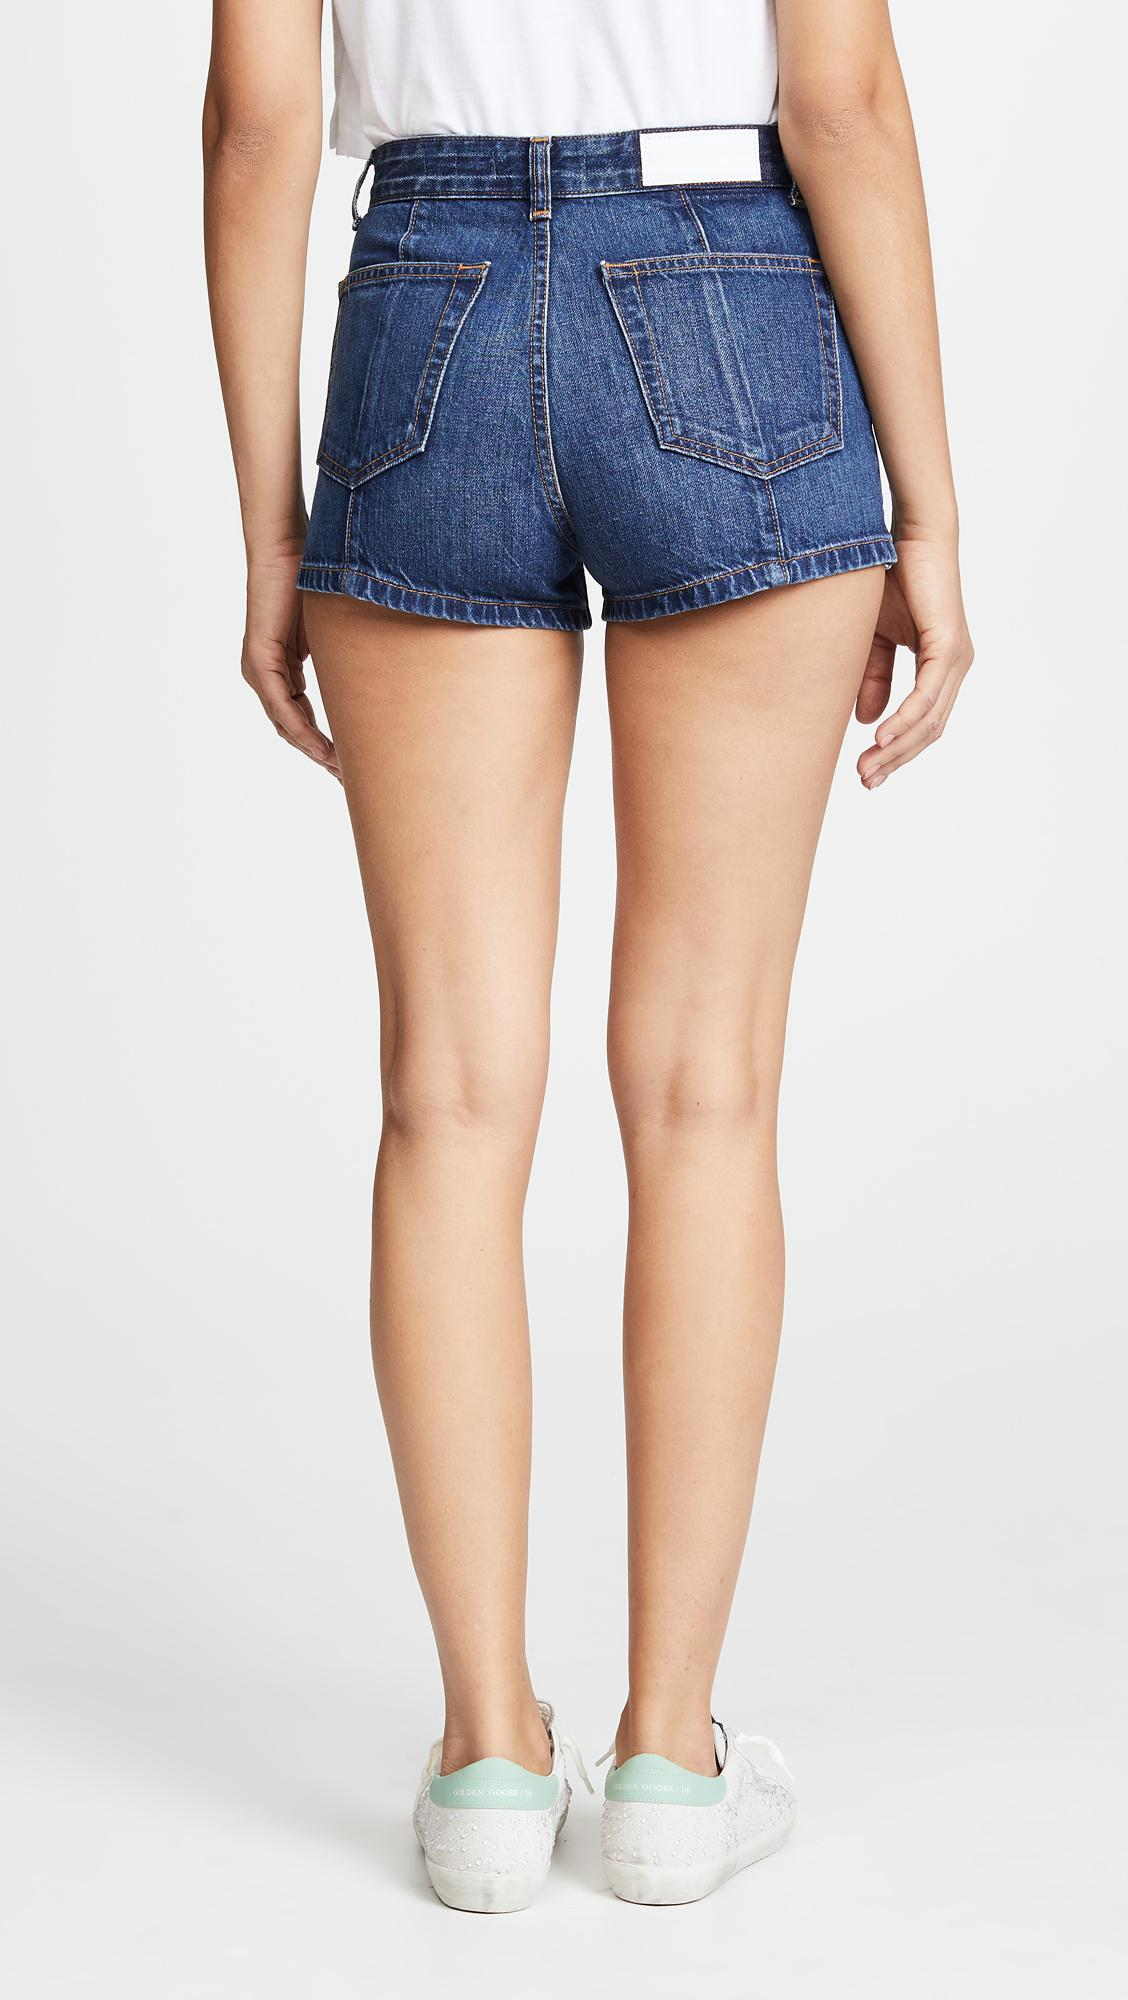 1ef73a853aed5 Lyst - RE DONE High Darted Button Tab Shorts in Blue